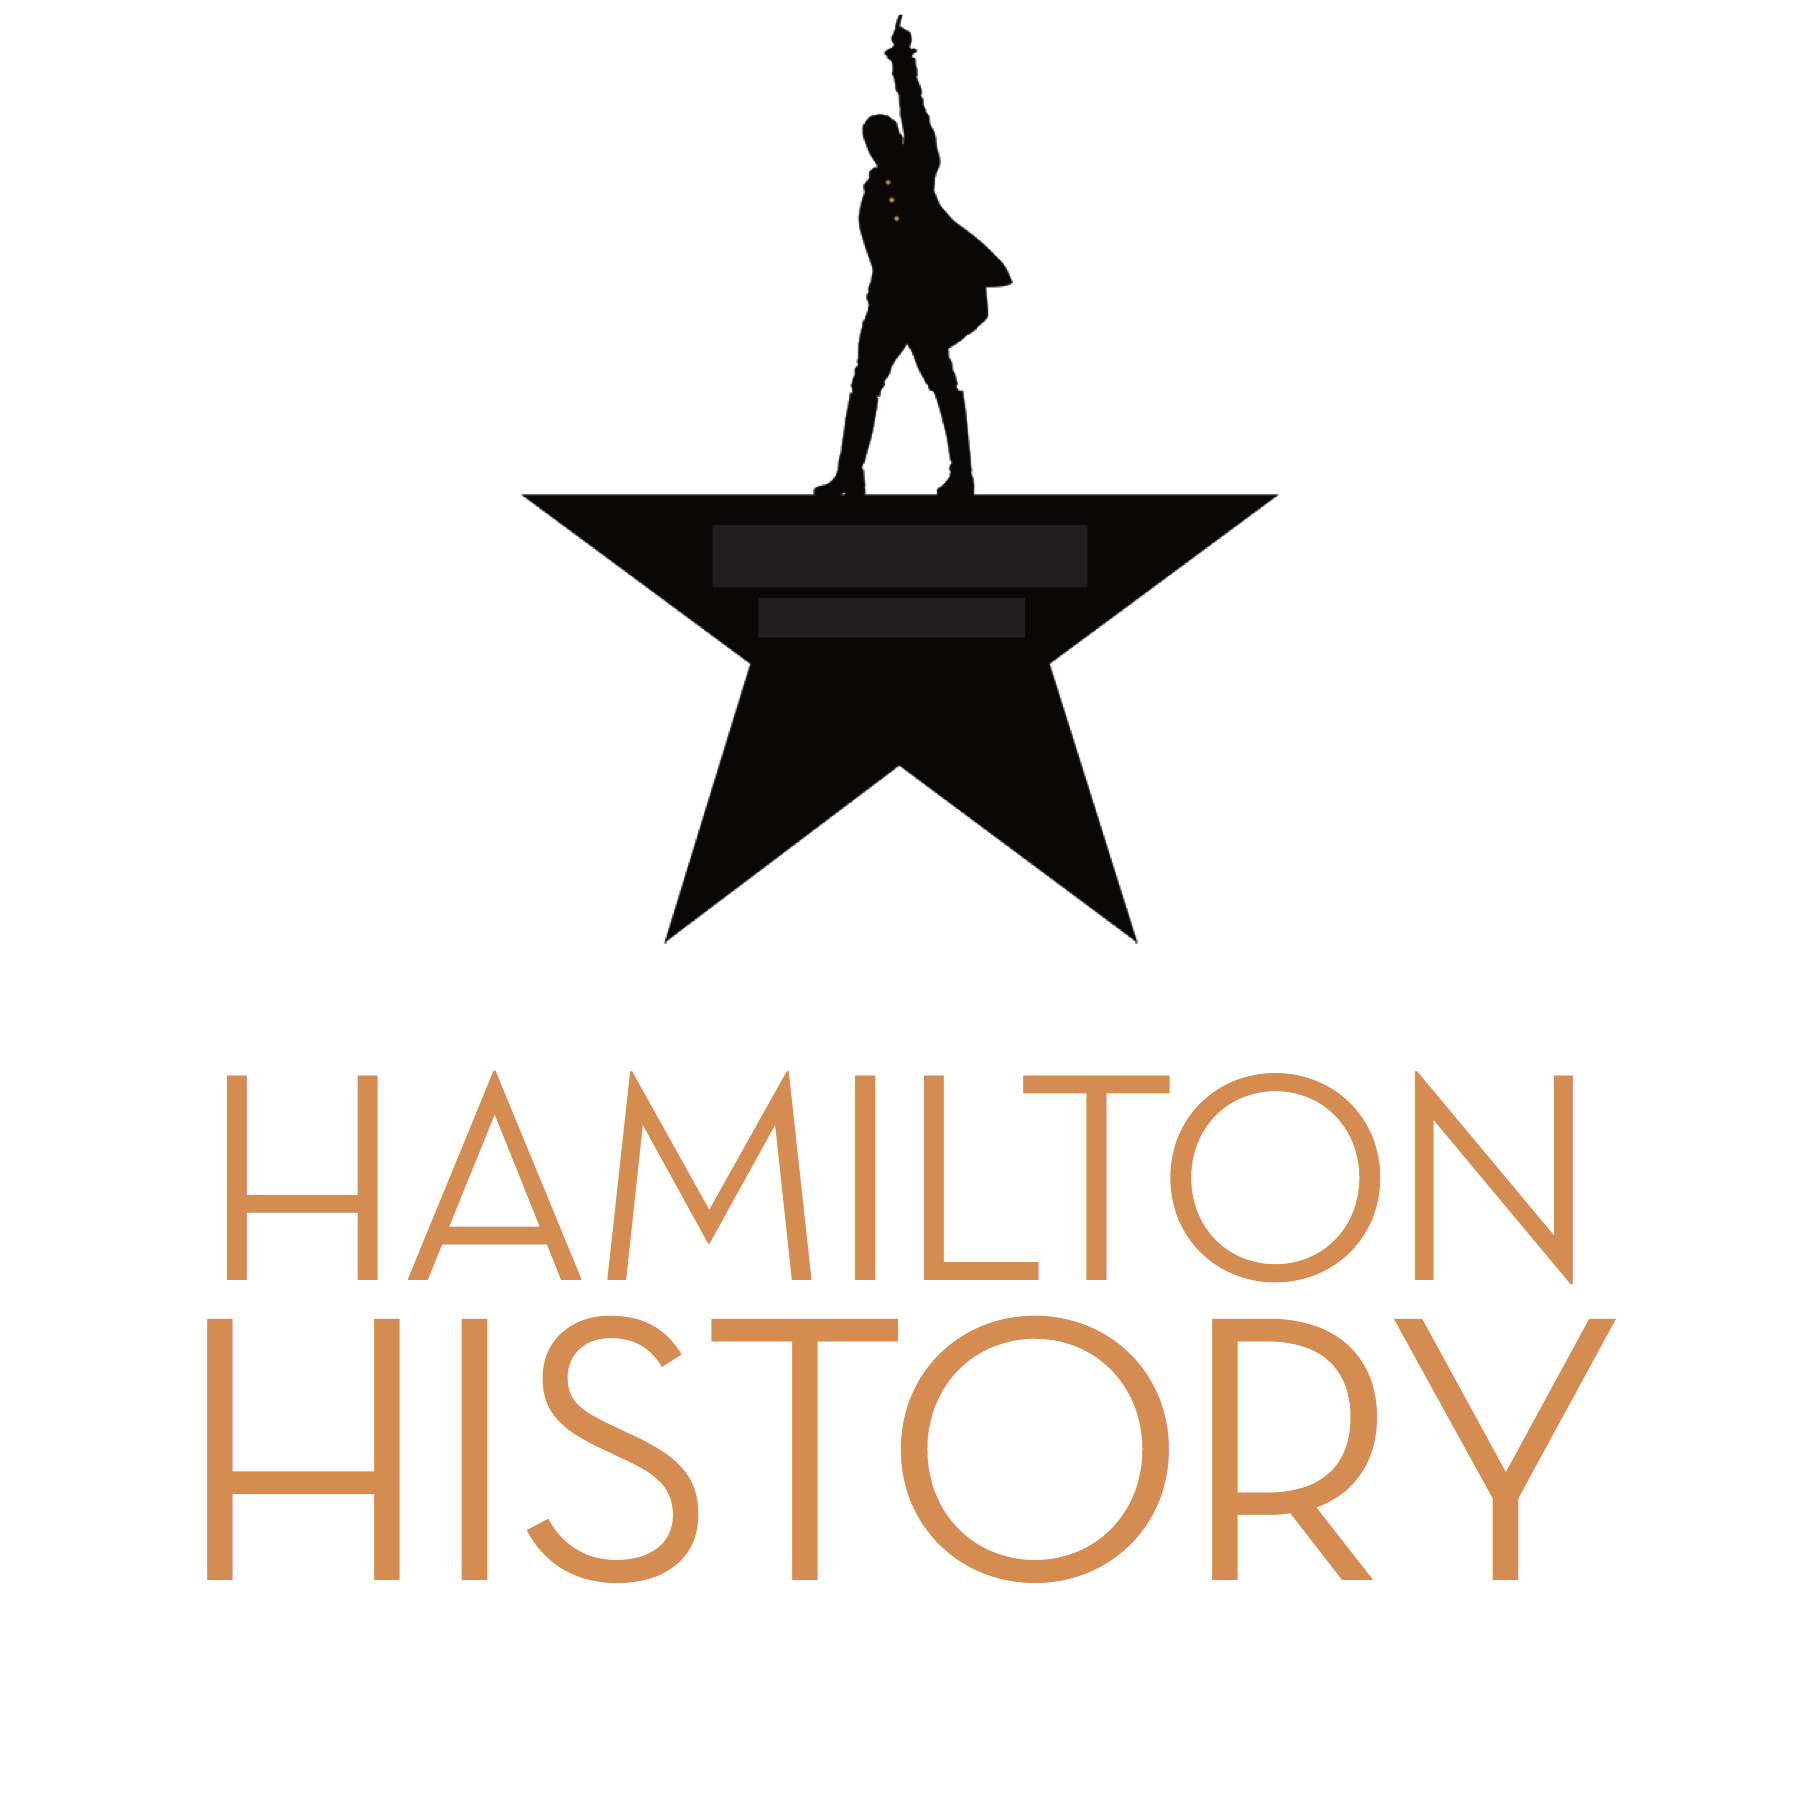 Cool online class about the history behind Hamilton the musical. #homeschool